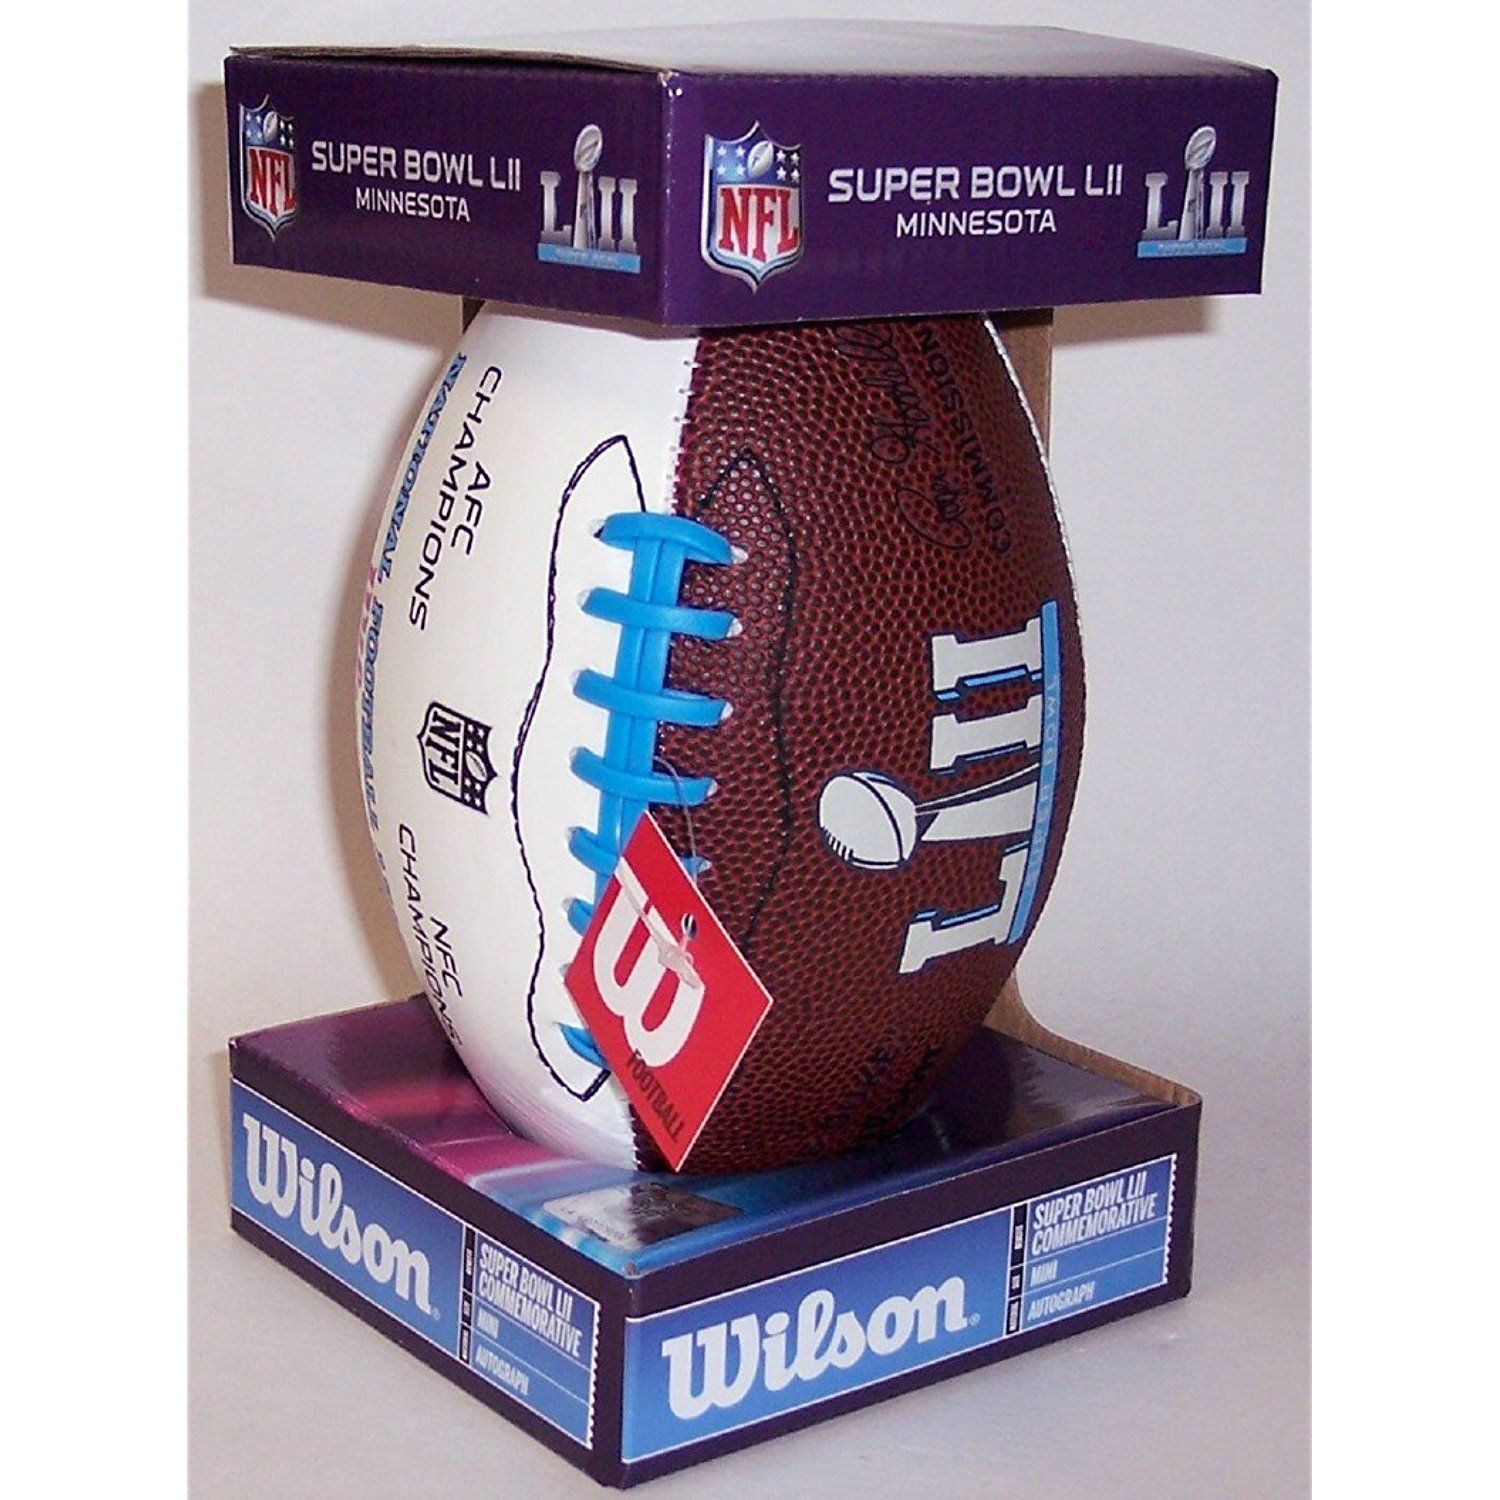 Super Bowl 52 Lii Wilson Nfl Autograph Model Mini Size Football Minnesota 2018 New In Box You Can Find More Super Bowl 52 Sports Collectibles Autograph